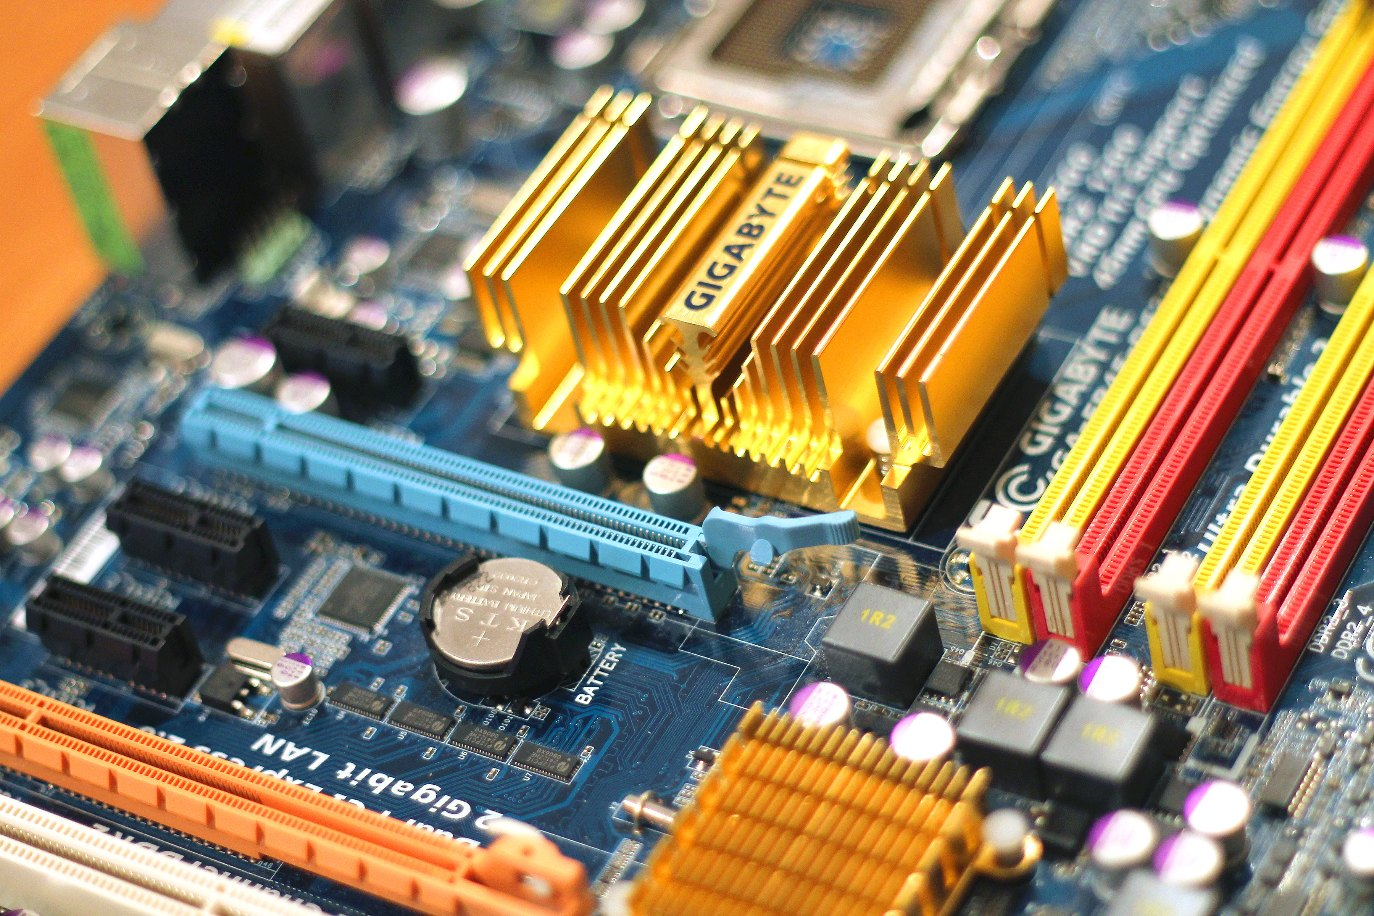 West DeLand FL On Site Computer & Printer Repairs, Networking, Voice & Data Cabling Services